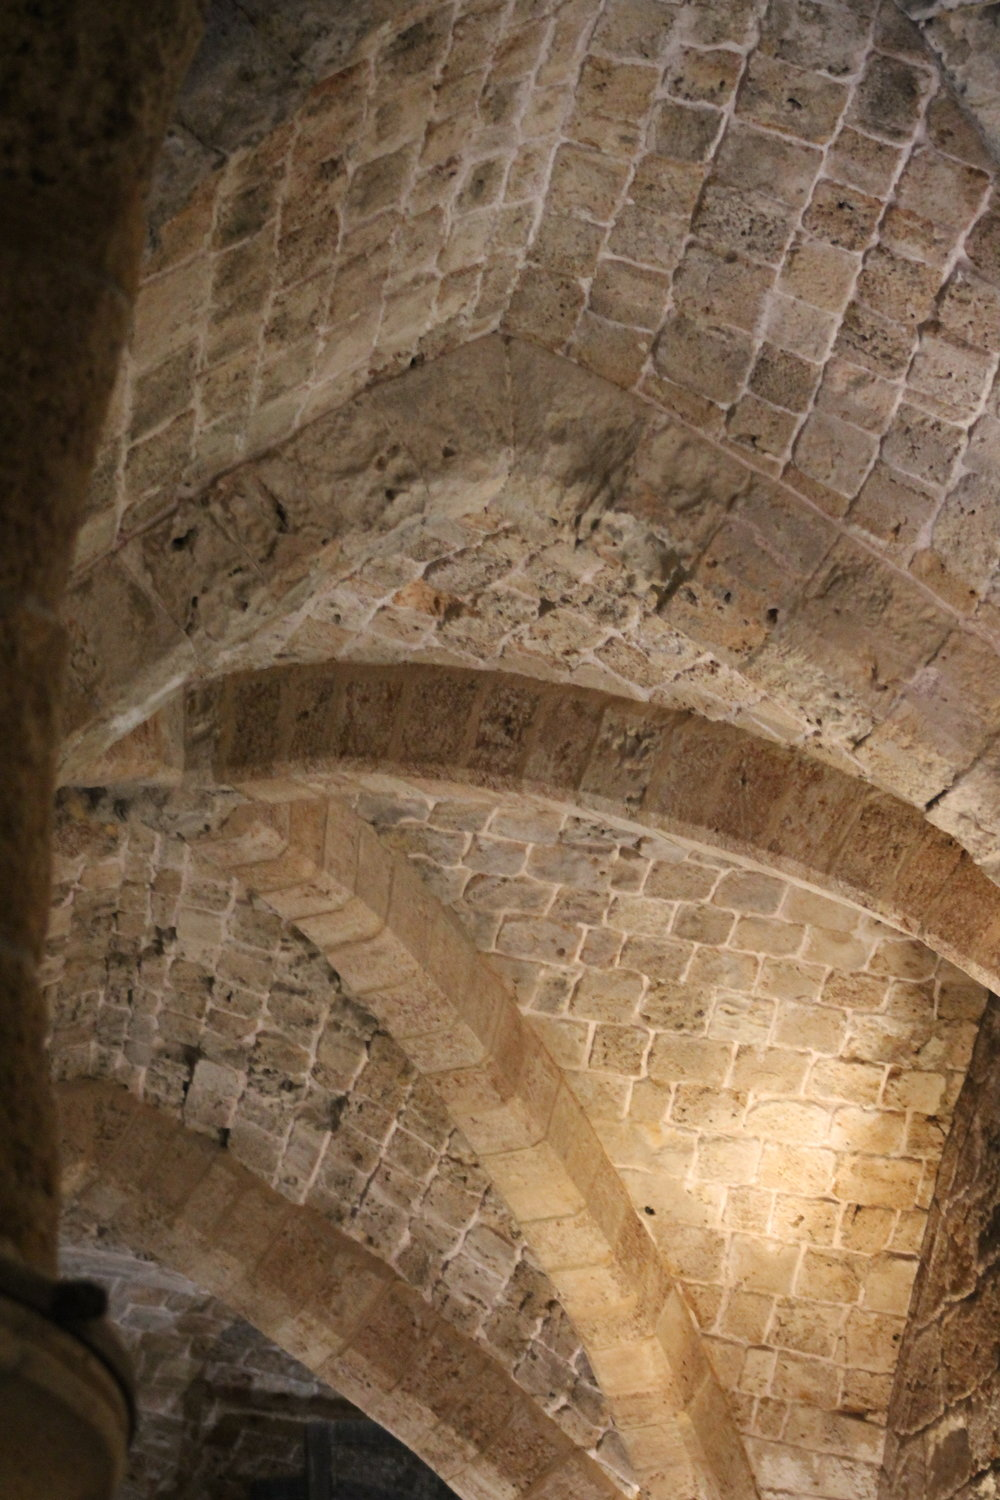 12th-century Crusader fortress in Akko (ancient Acre).